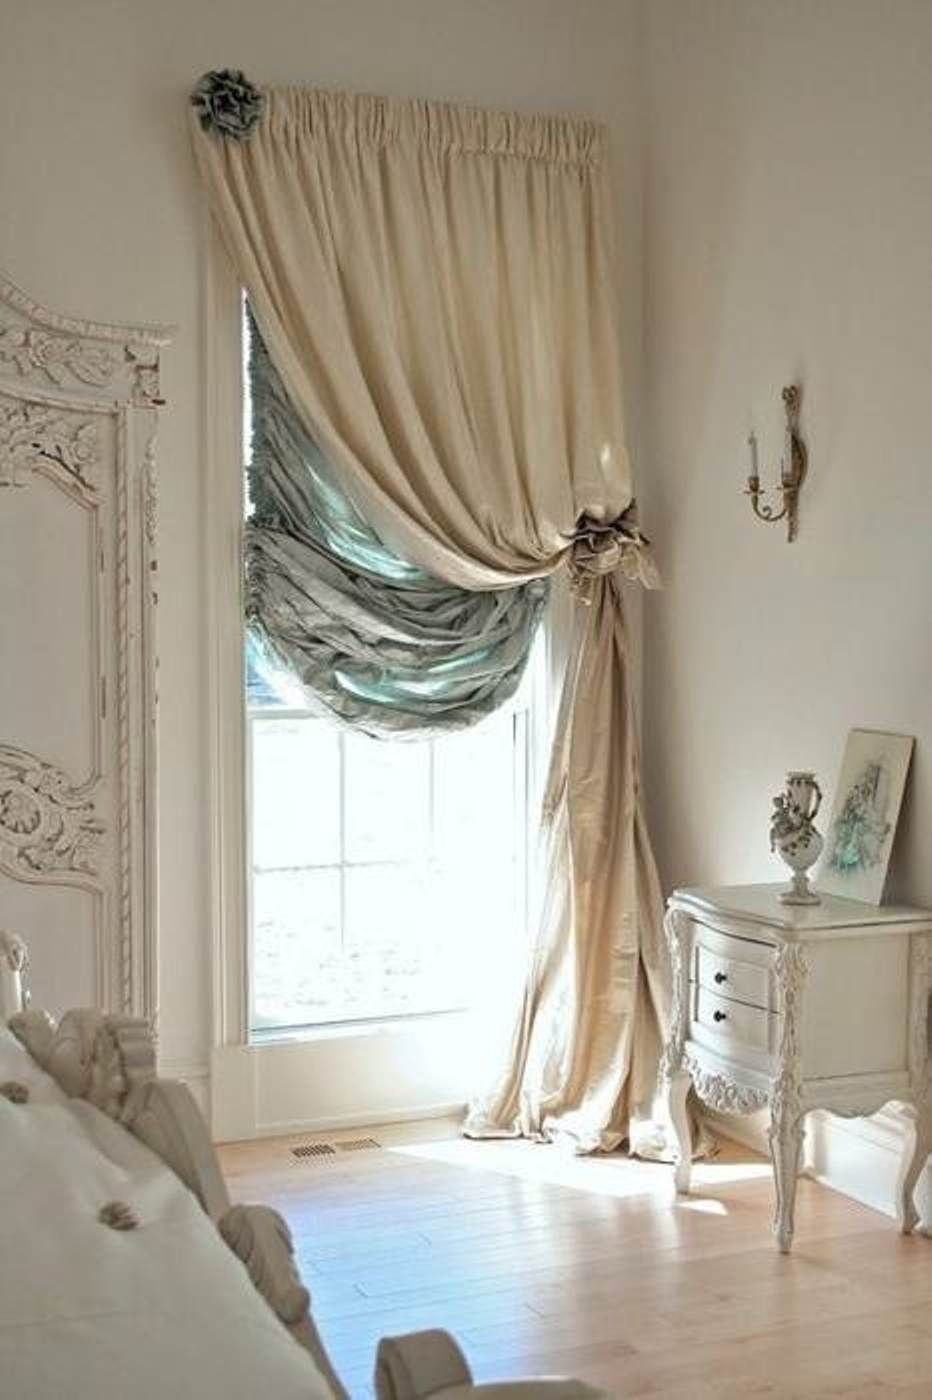 Bedroom Curtain Designs Pictures Great Curtain Ideas For Bedroom  Better Home And Garden  Designs